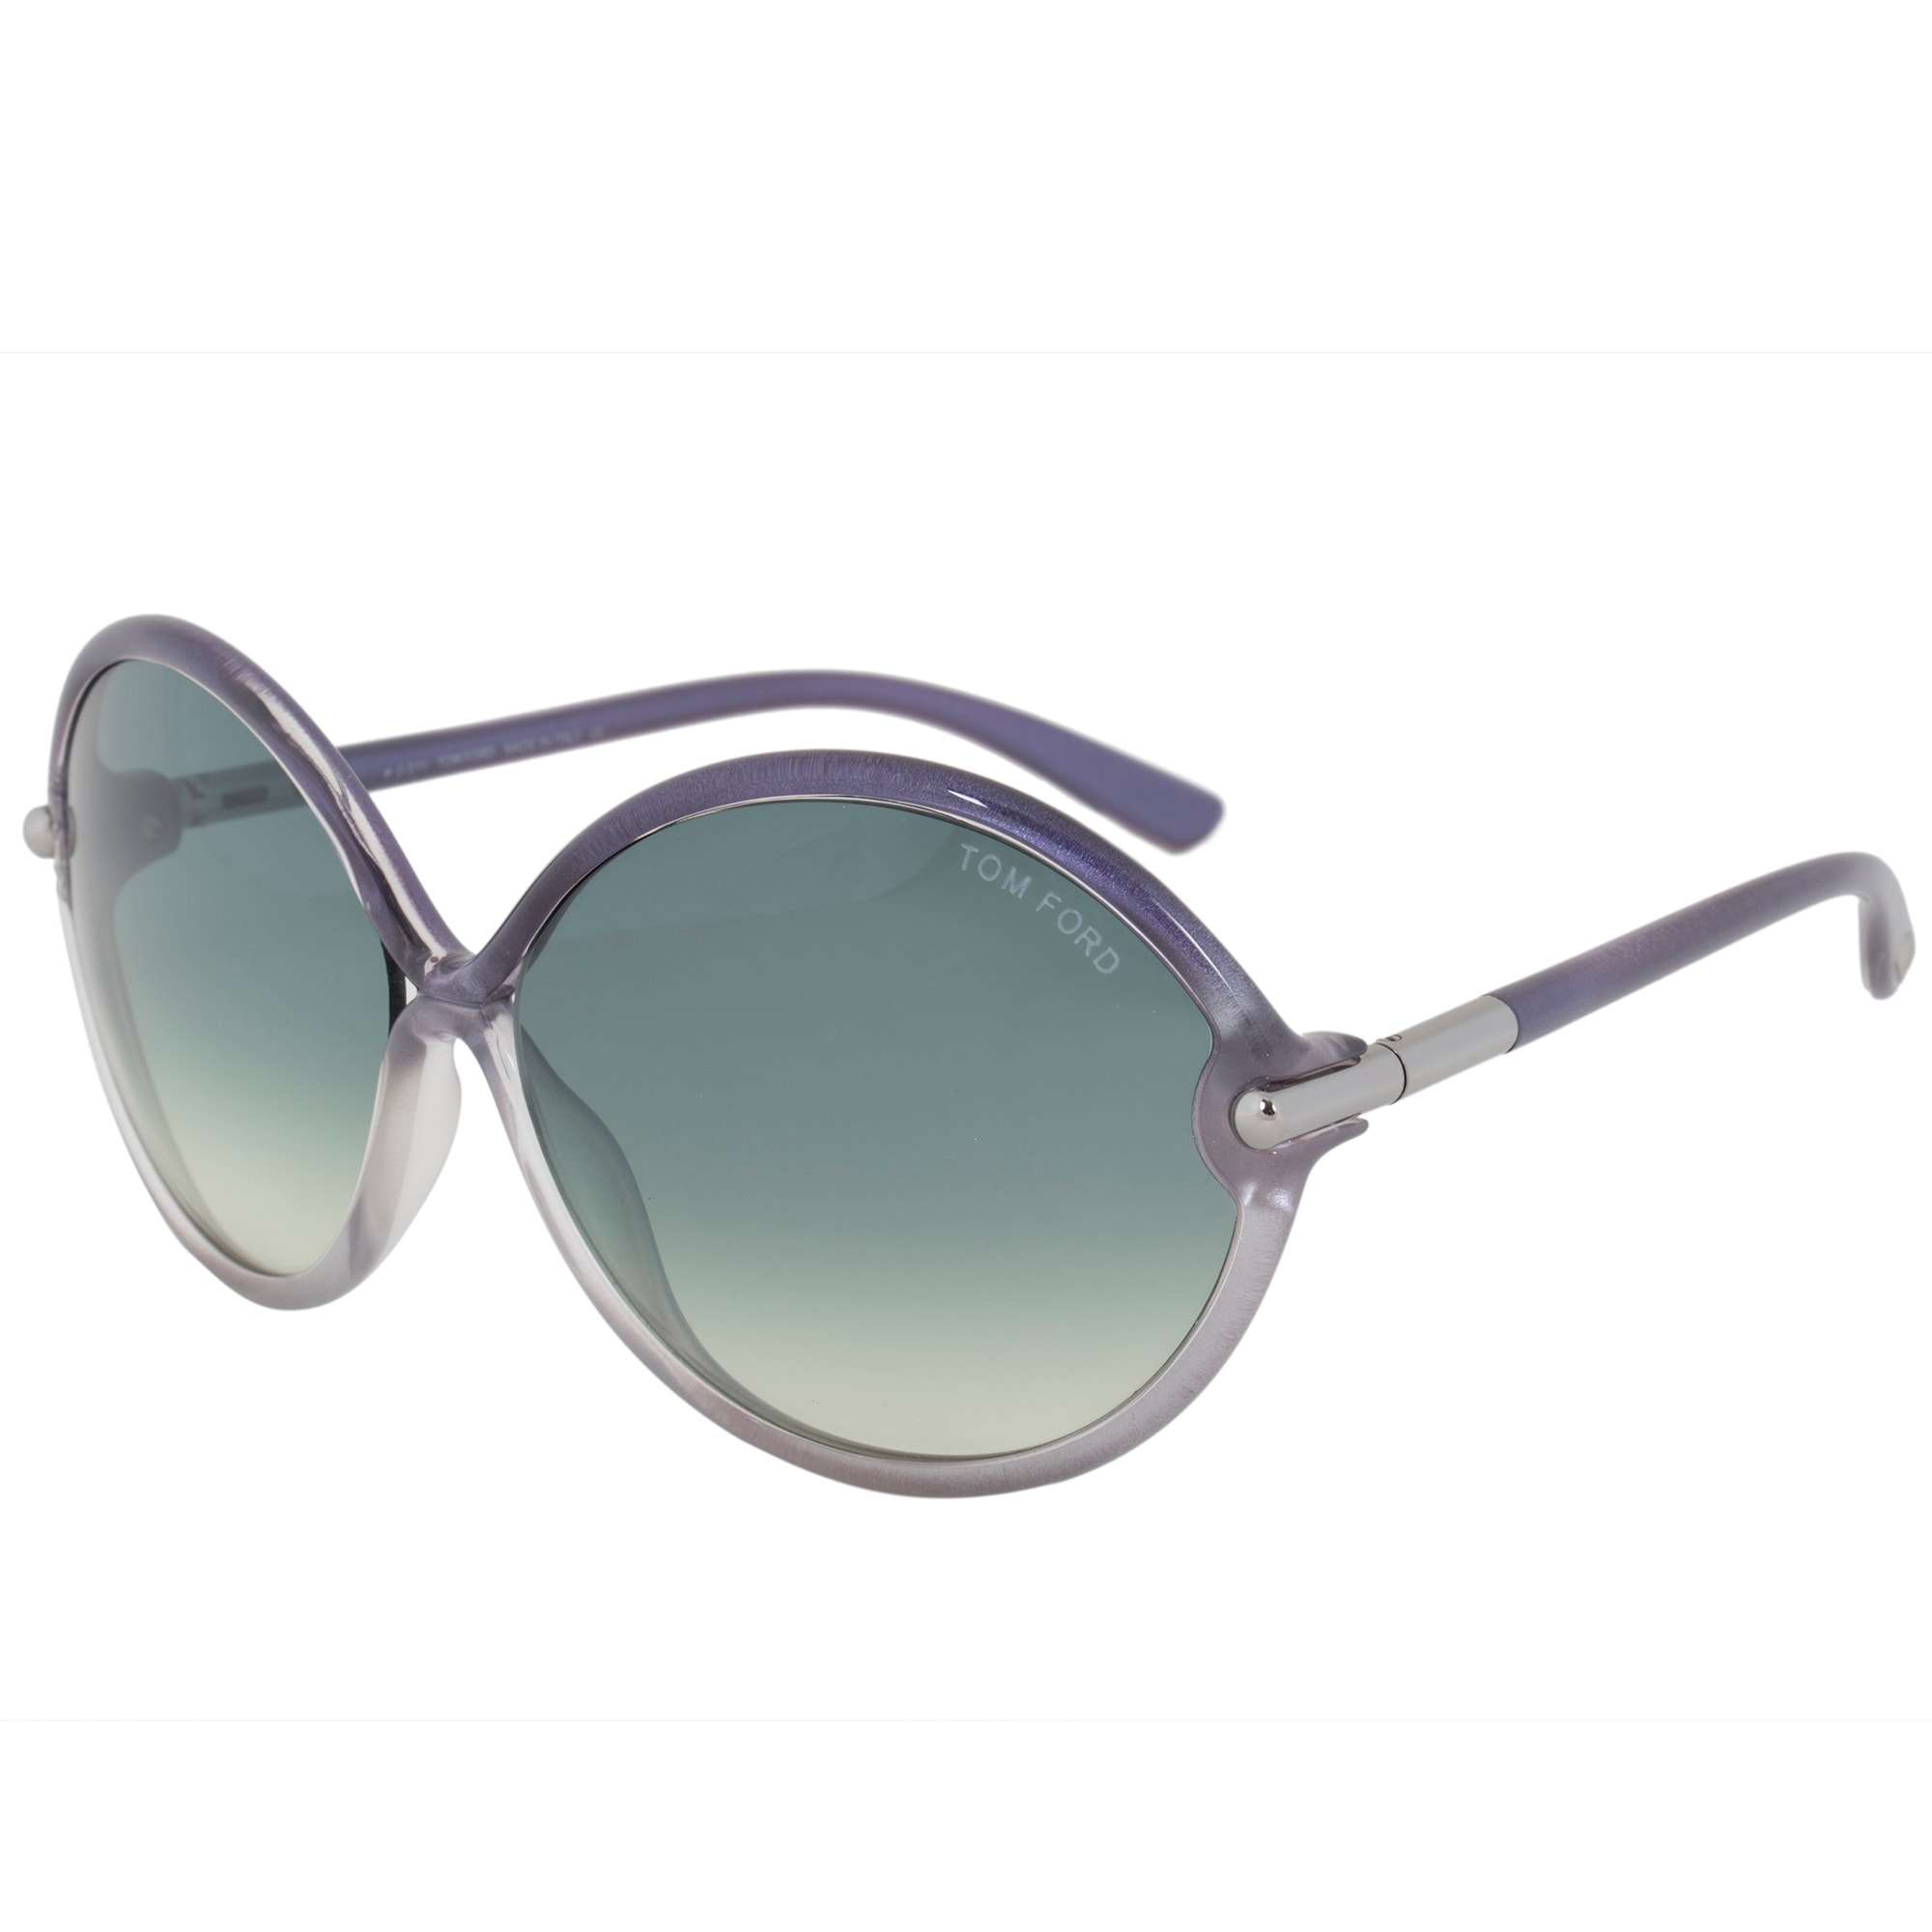 8224802a7f Shop Tom Ford Rita Unisex Oval Sunglasses FT0225 83B 63 - Free Shipping  Today - Overstock - 21408984